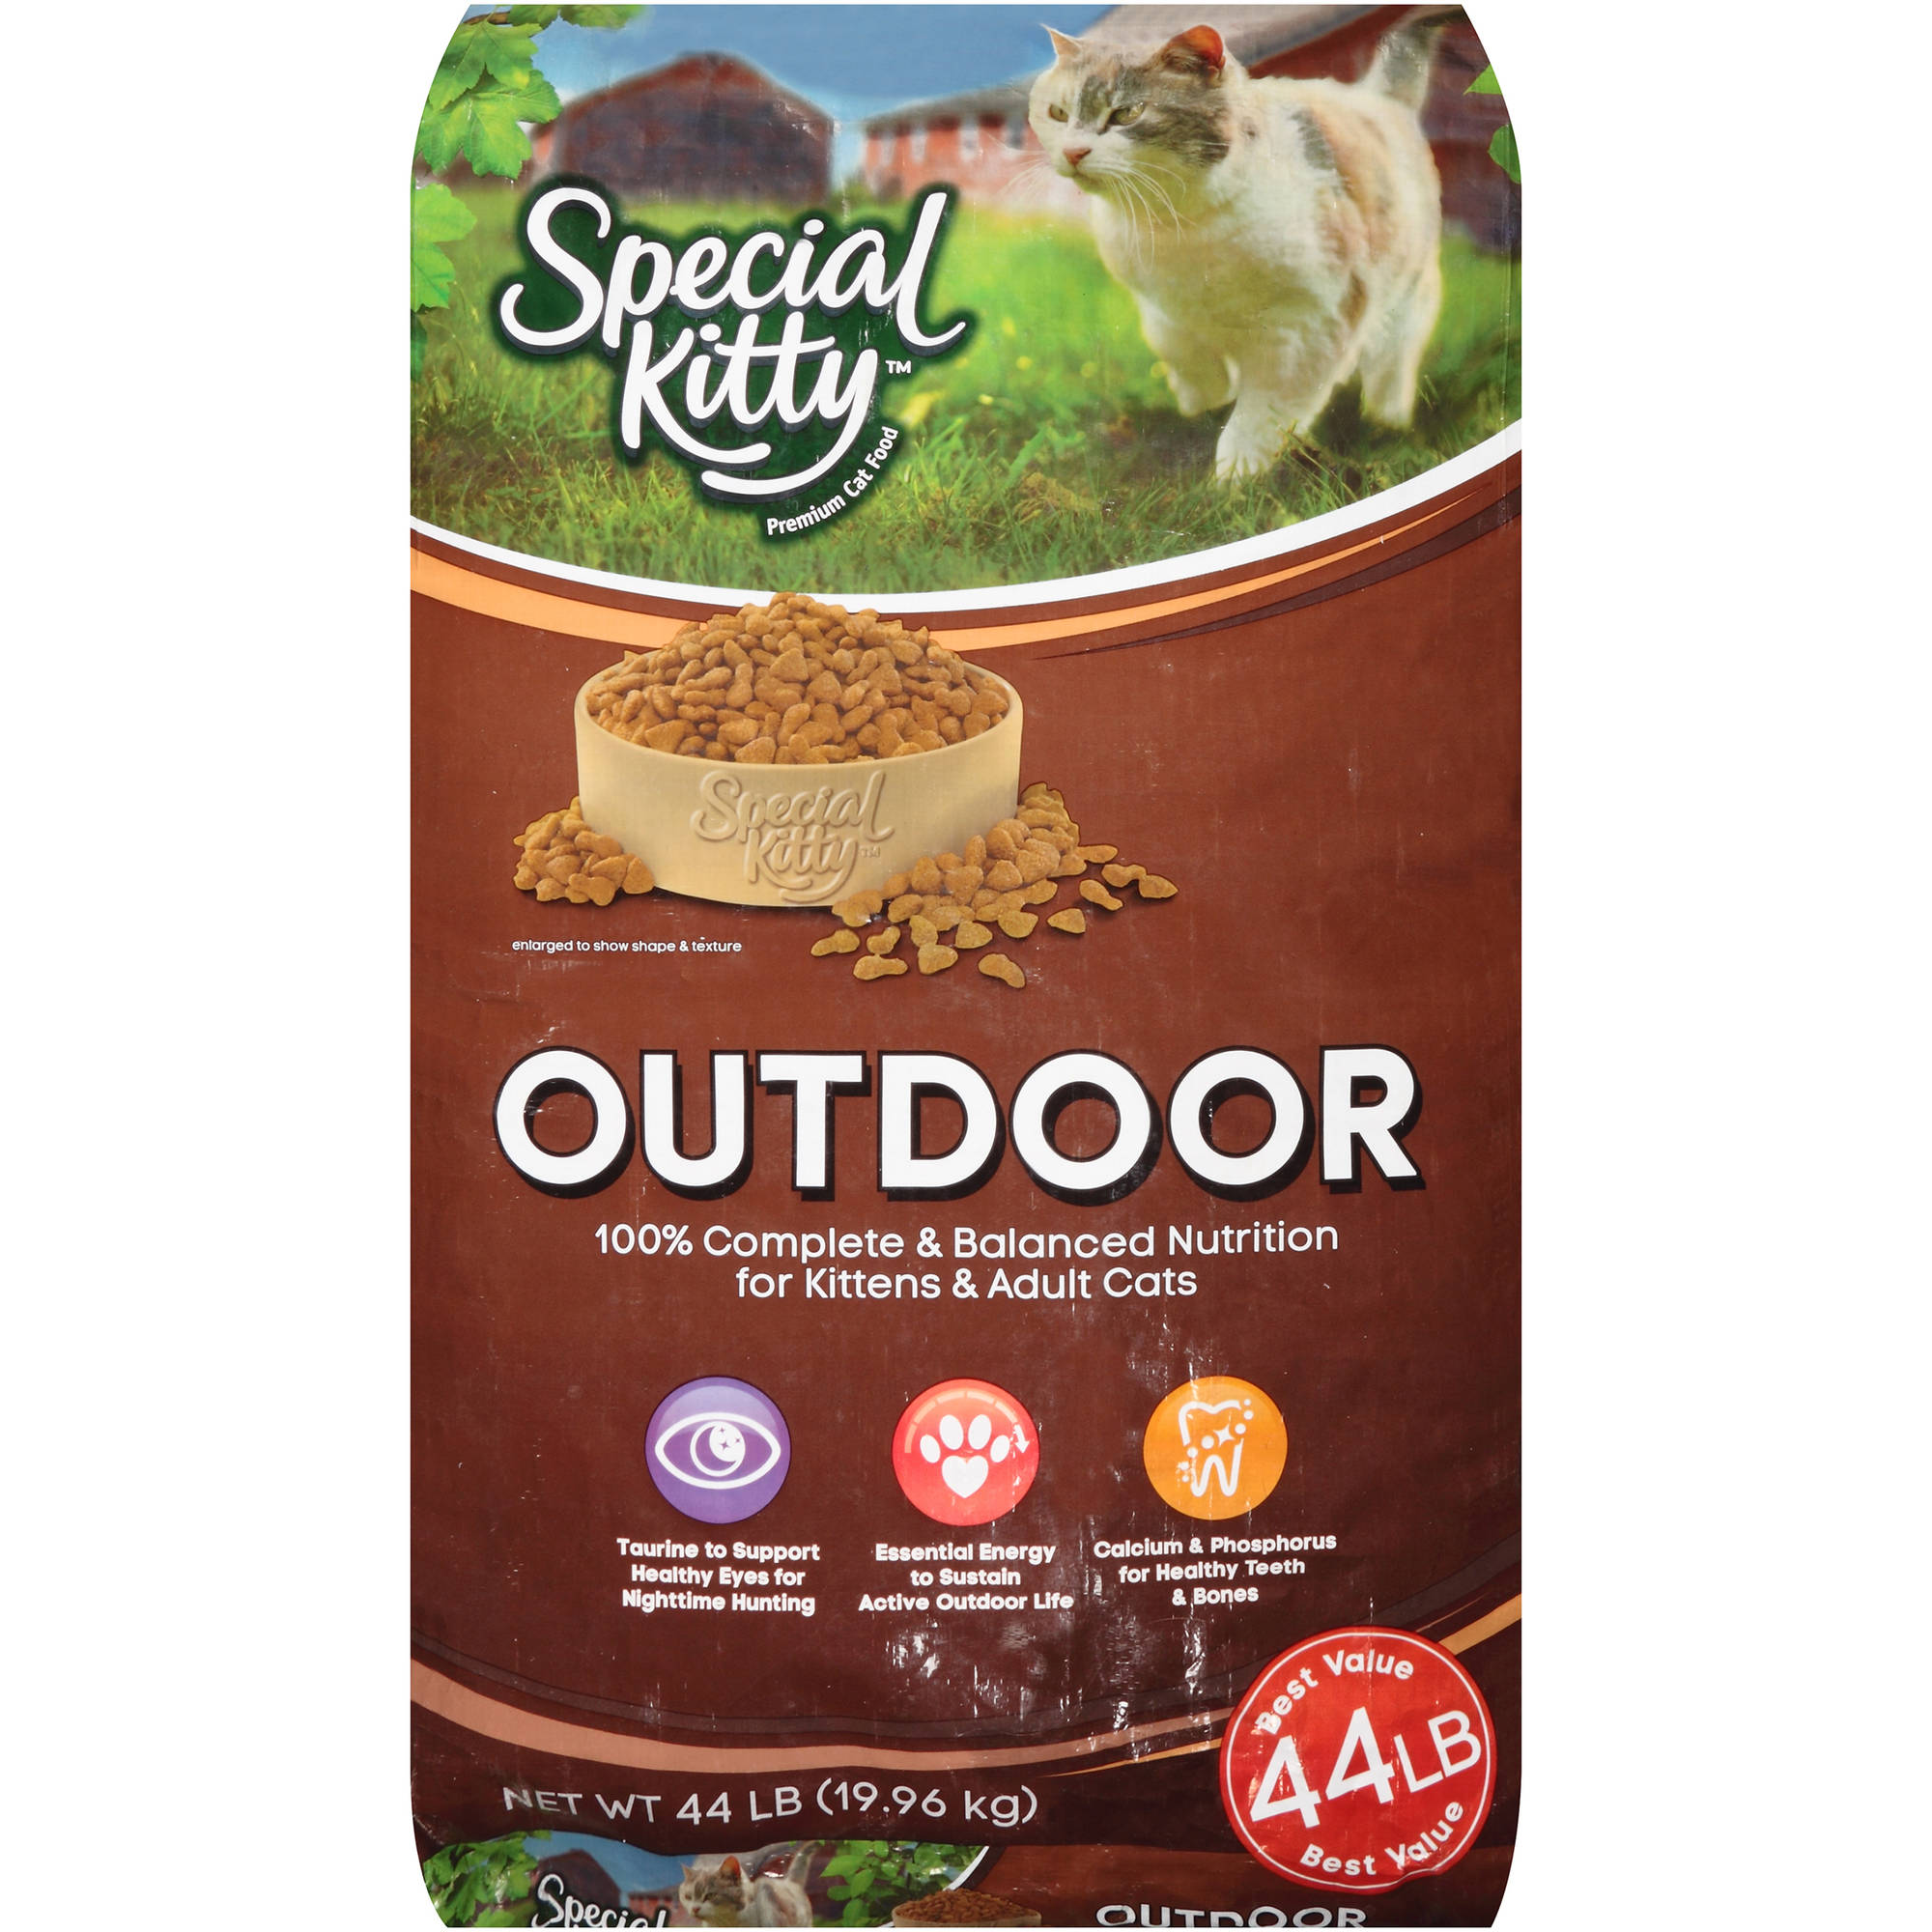 Special Kitty Outdoor Dry Cat Food 44 lb. Bag